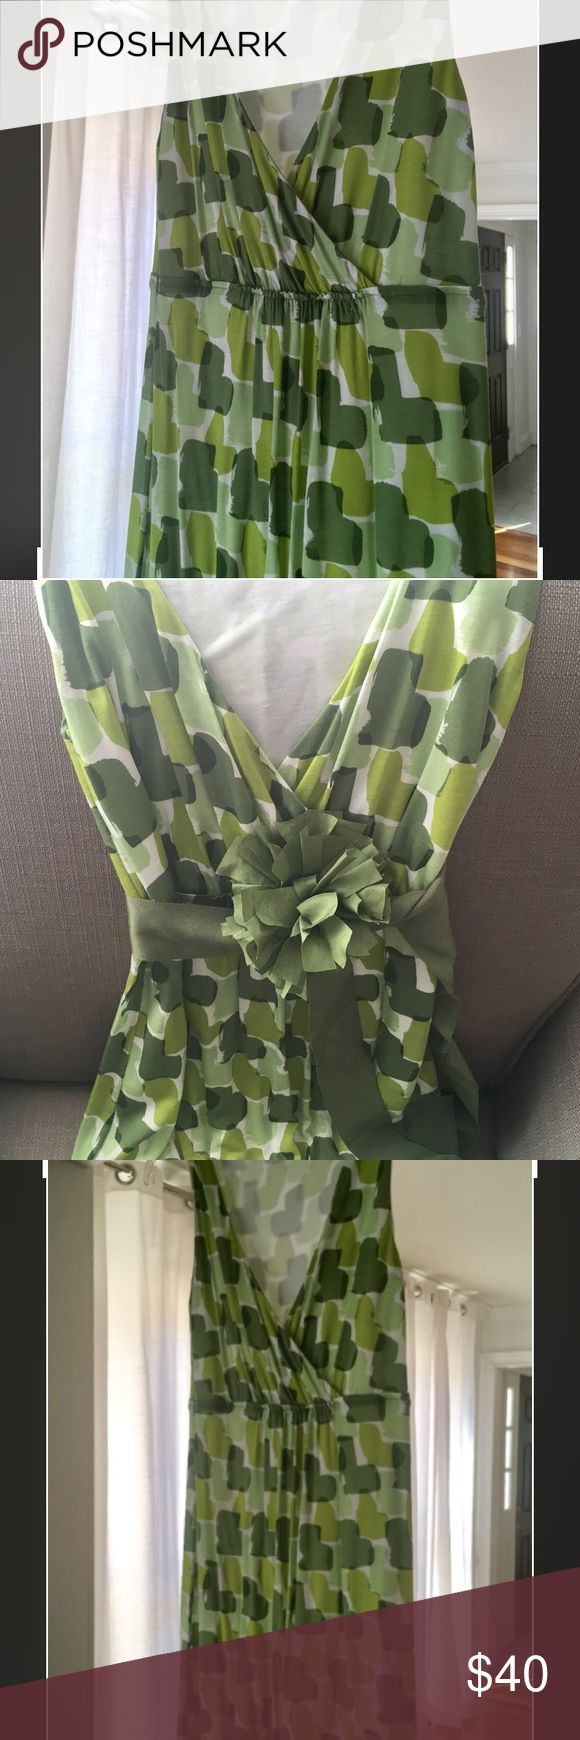 Boden LIKE NEW Lime Green Dress US 4 (UK 8) Boden LIKE NEW (Worn 2 or 3 times) Lime Green and White Print Dress with removable waist tie and flower (pins on- I wore the dress without it), flattering fit, great for spring, Easter, or work to party, US 4 (UK 8) Boden Dresses Midi